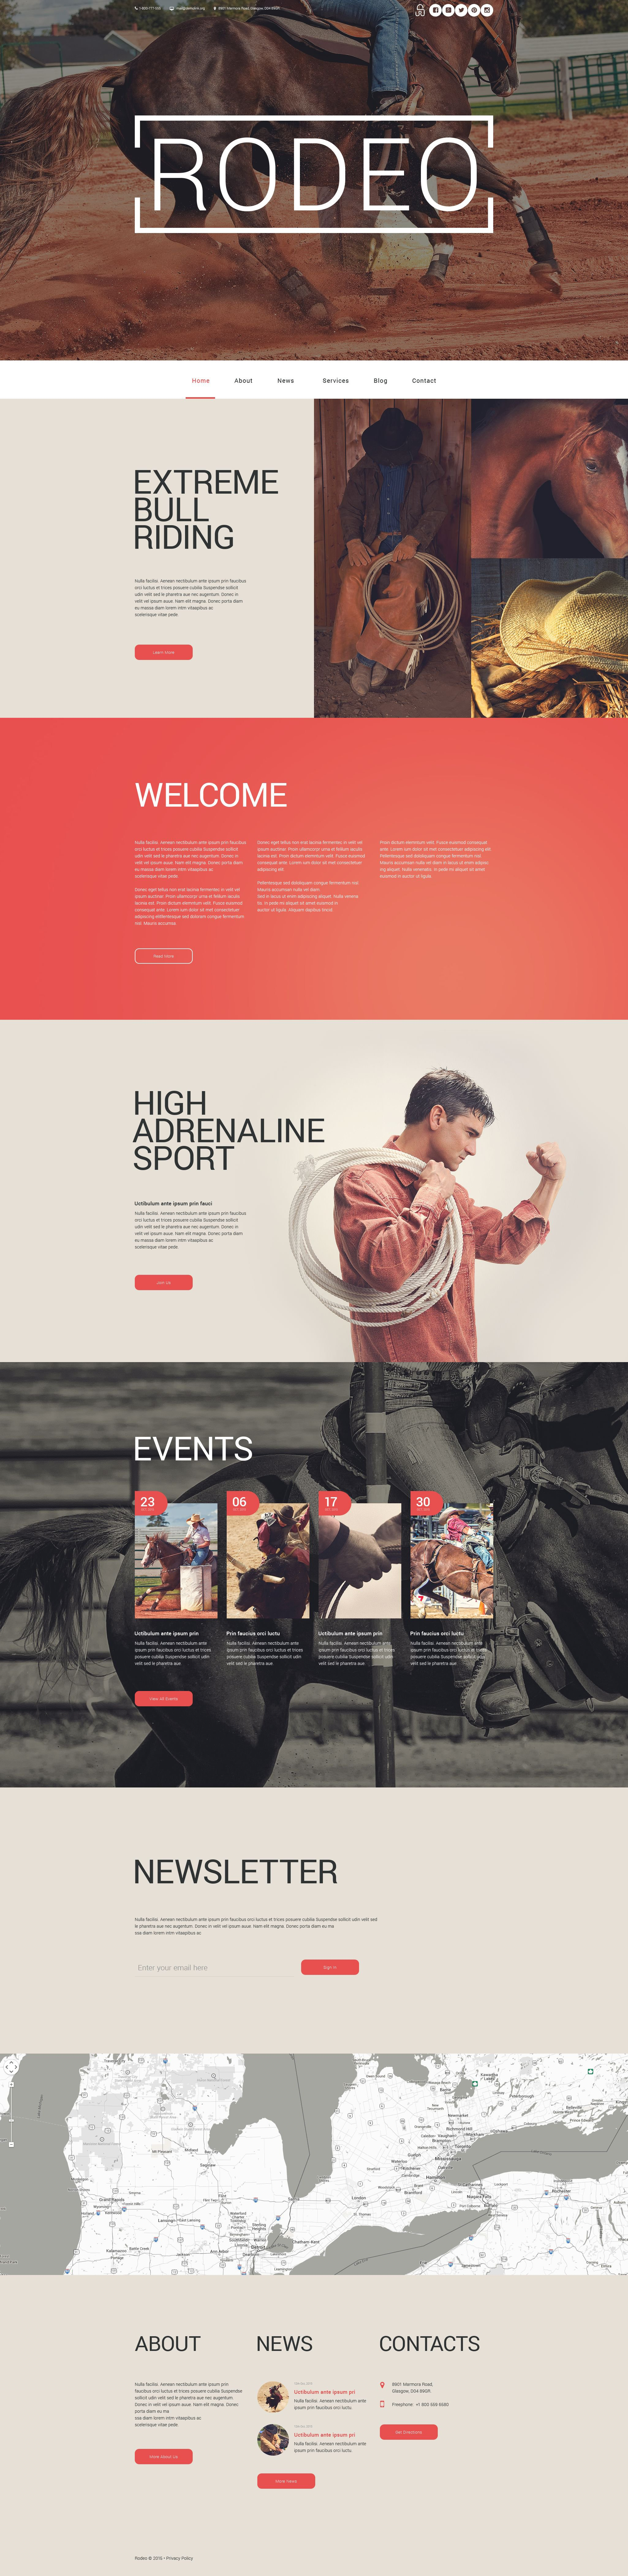 Rodeo Arena WordPress Theme - screenshot